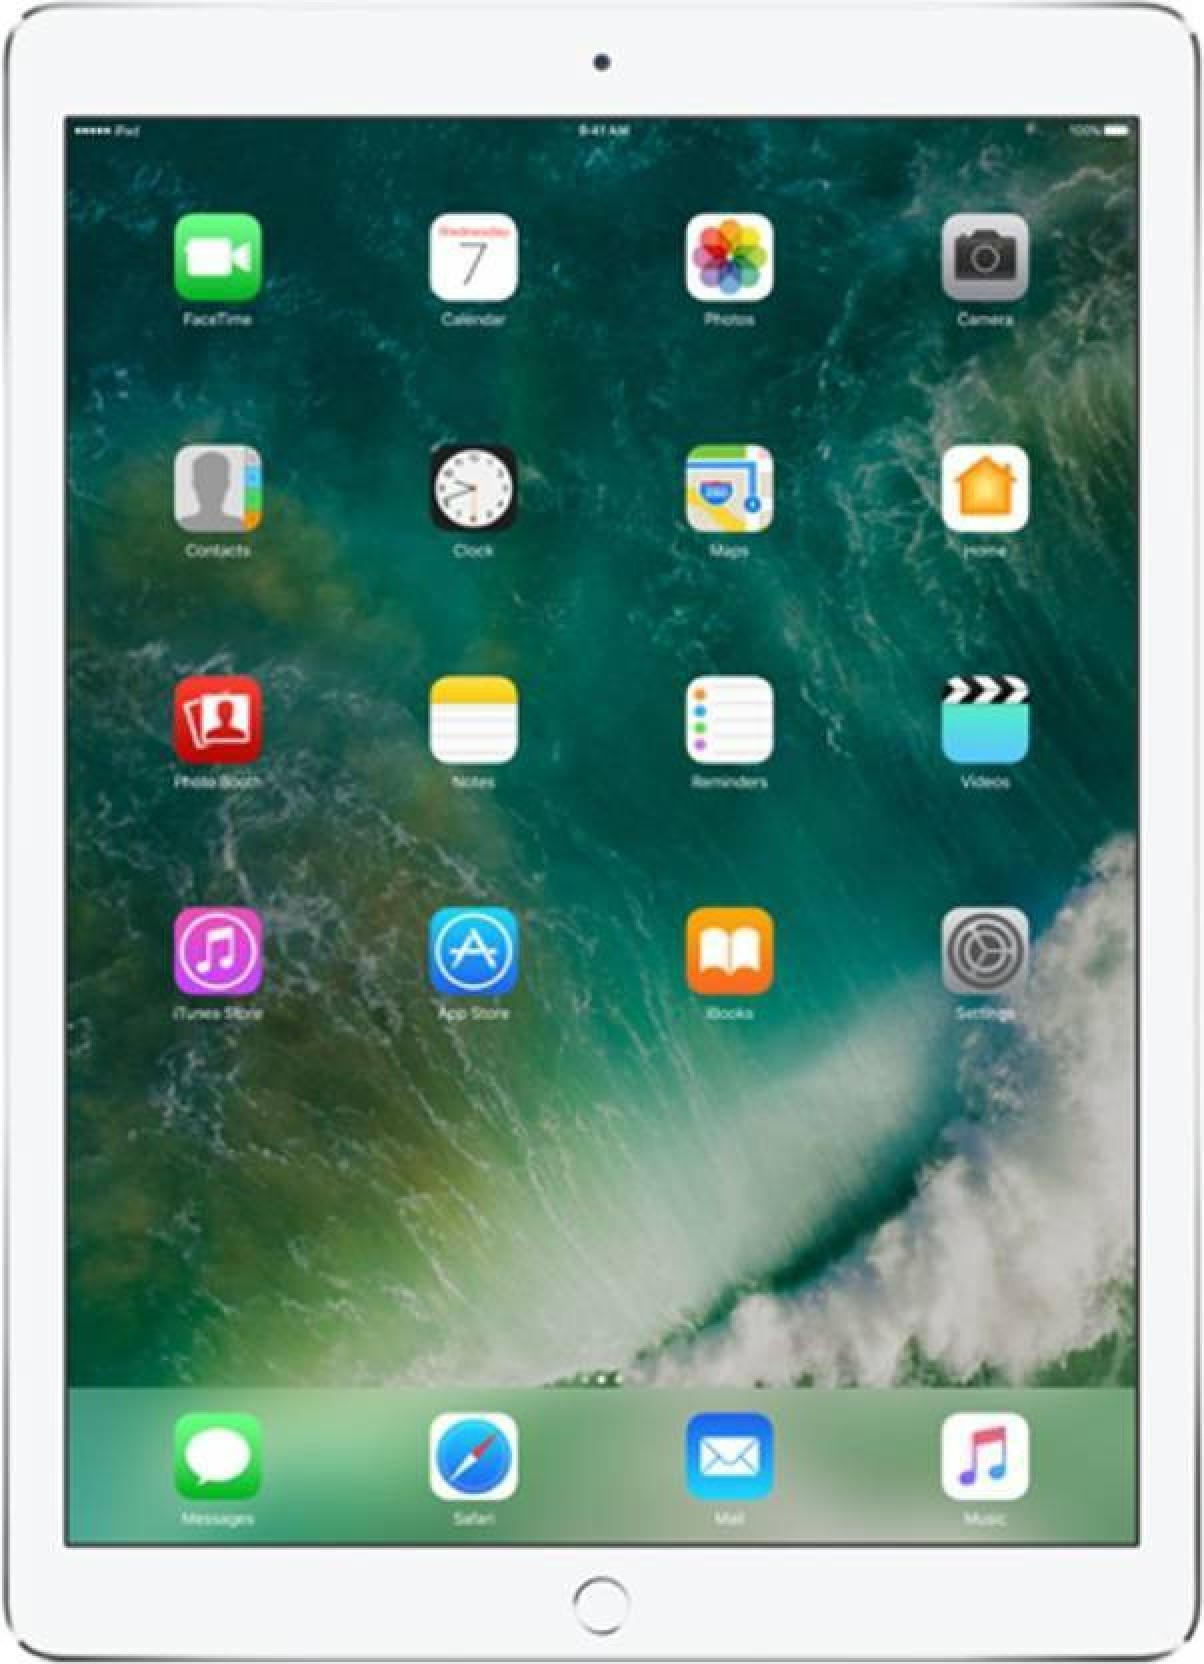 Apple Ipad 32 Gb 97 Inch With Wi Fi 4g Silver Price In India Hp Slate 7 Voicetab 16 3g Home